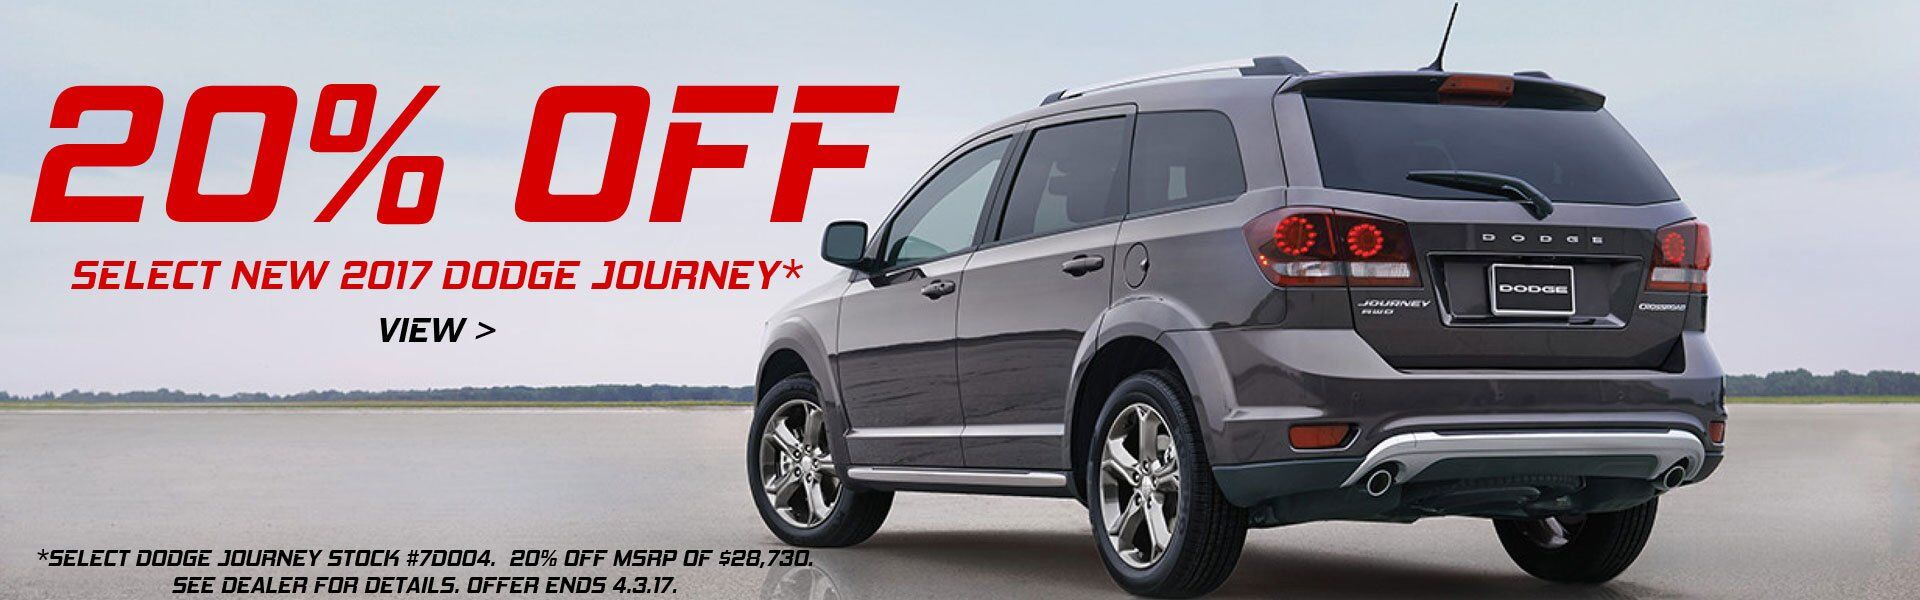 Dodge Journey 20% Off